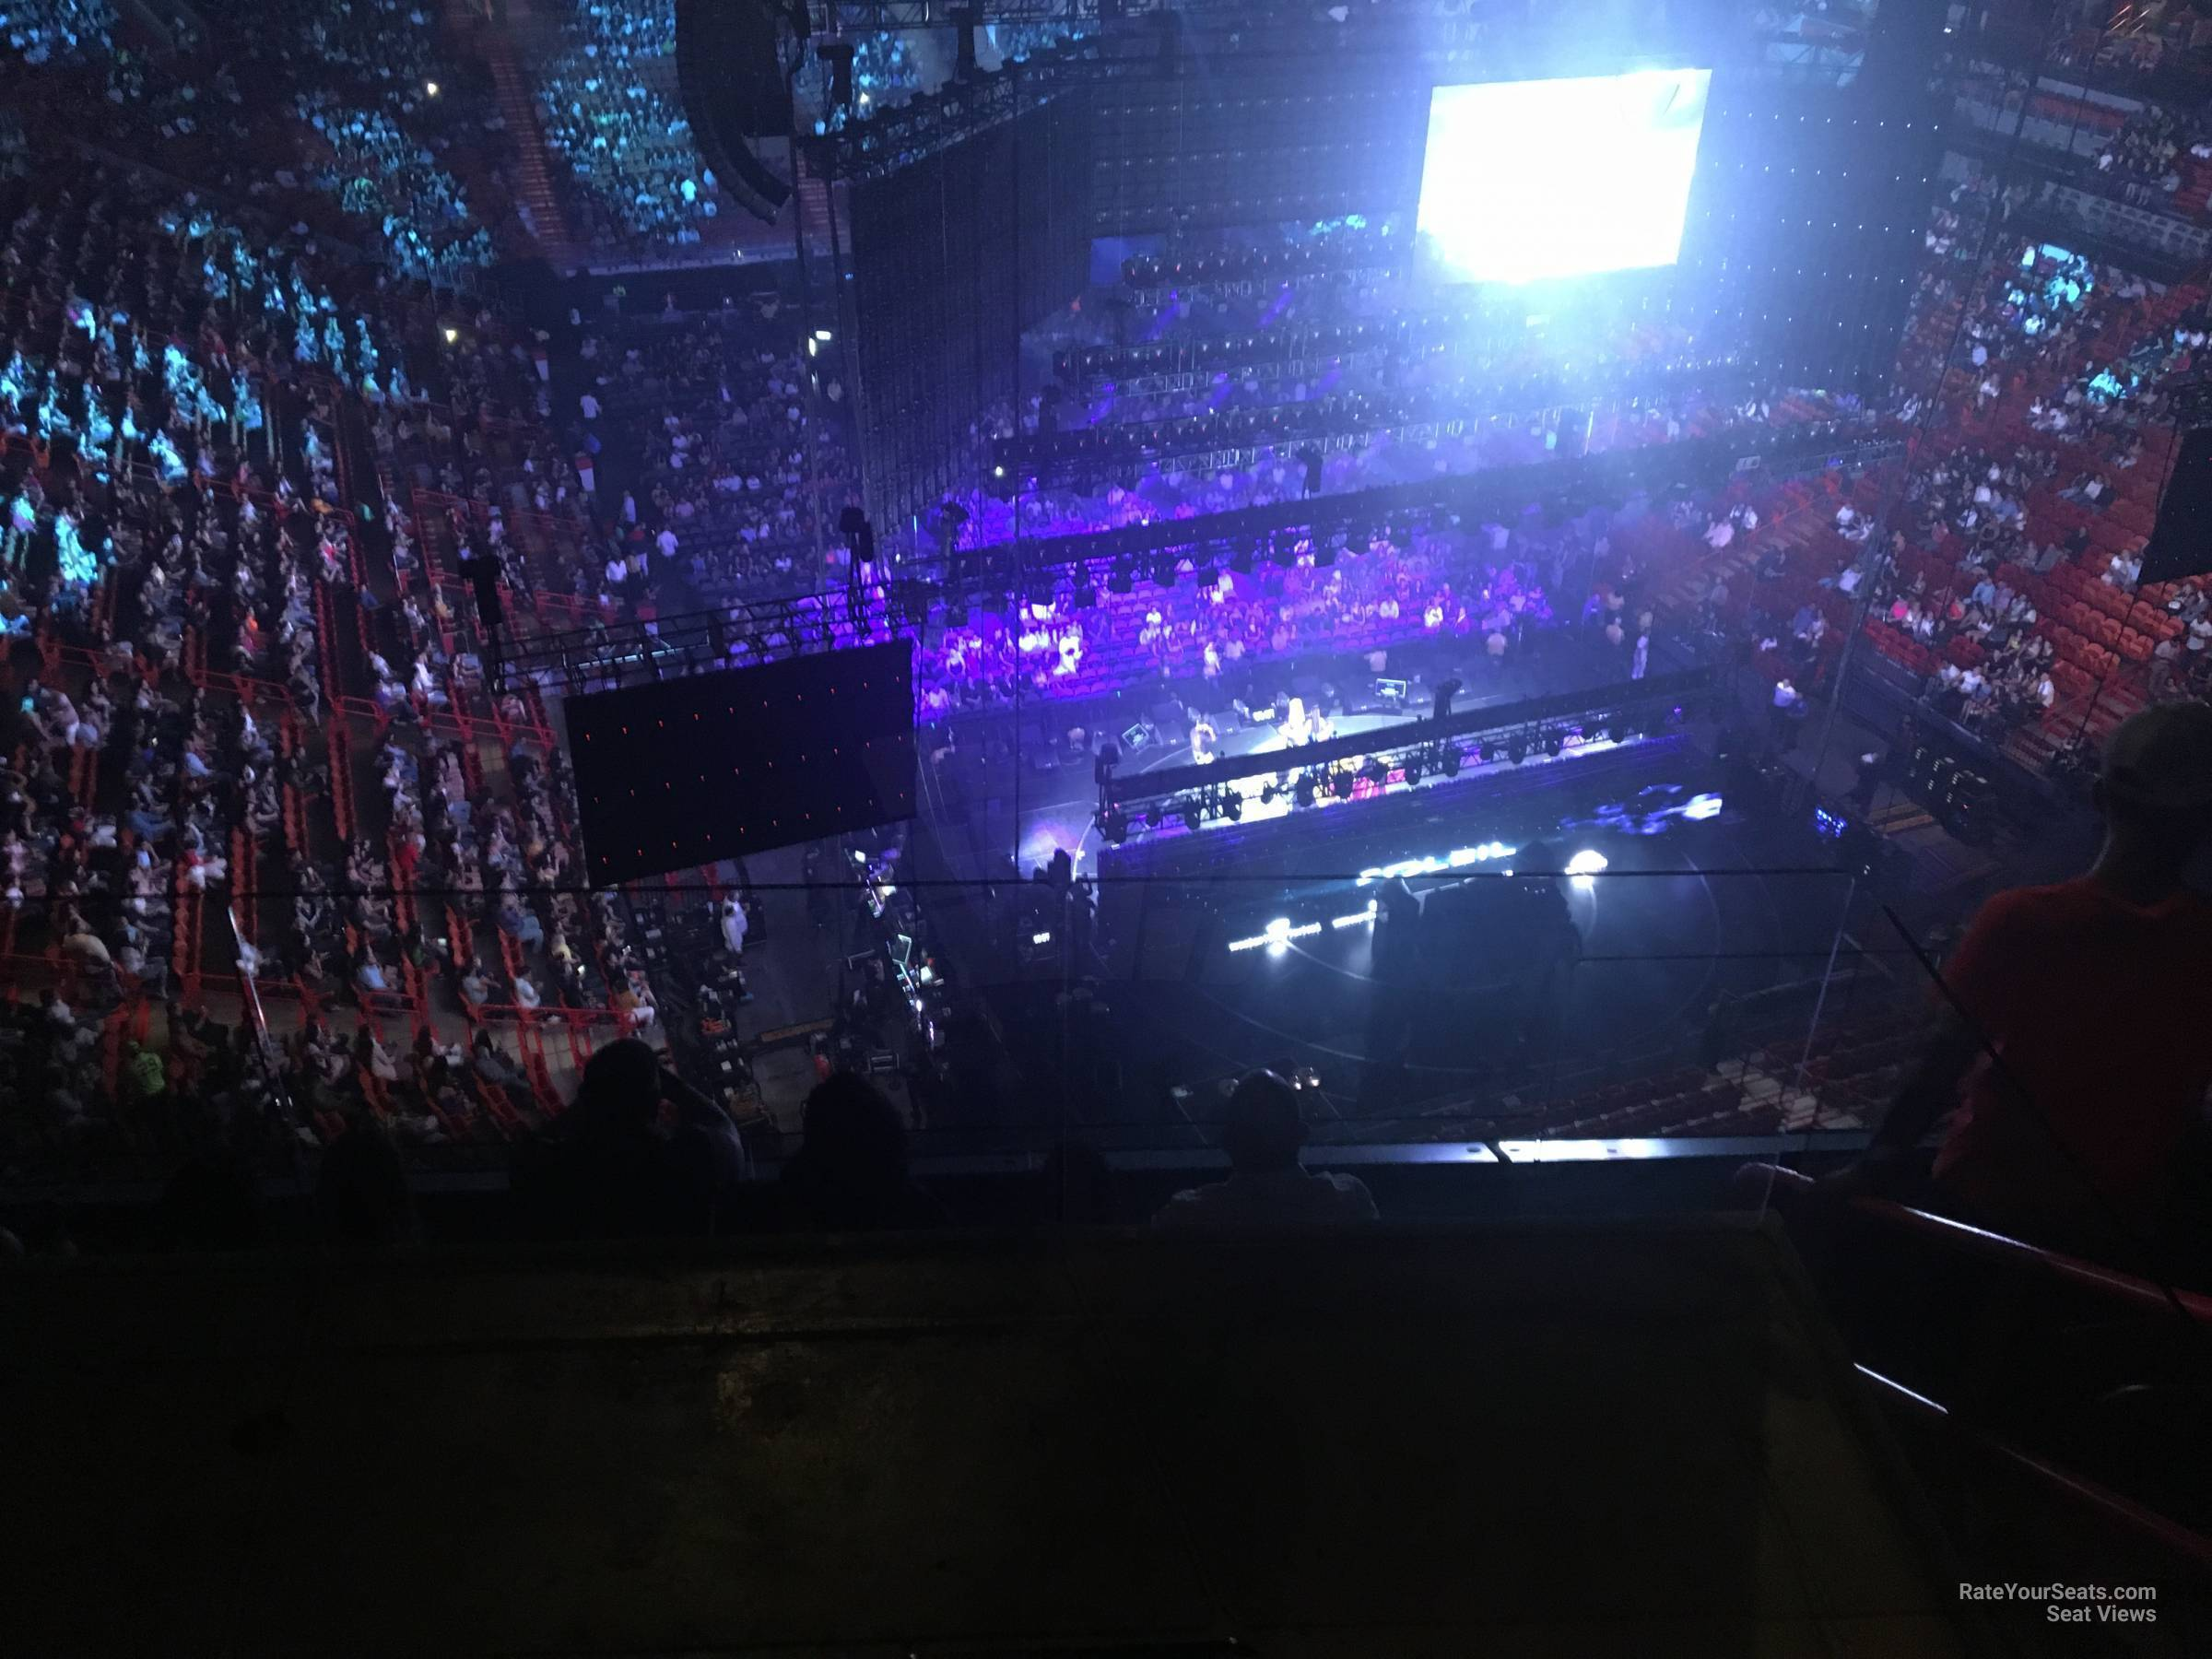 Concert Seat View for AmericanAirlines Arena Section 407, Row 4